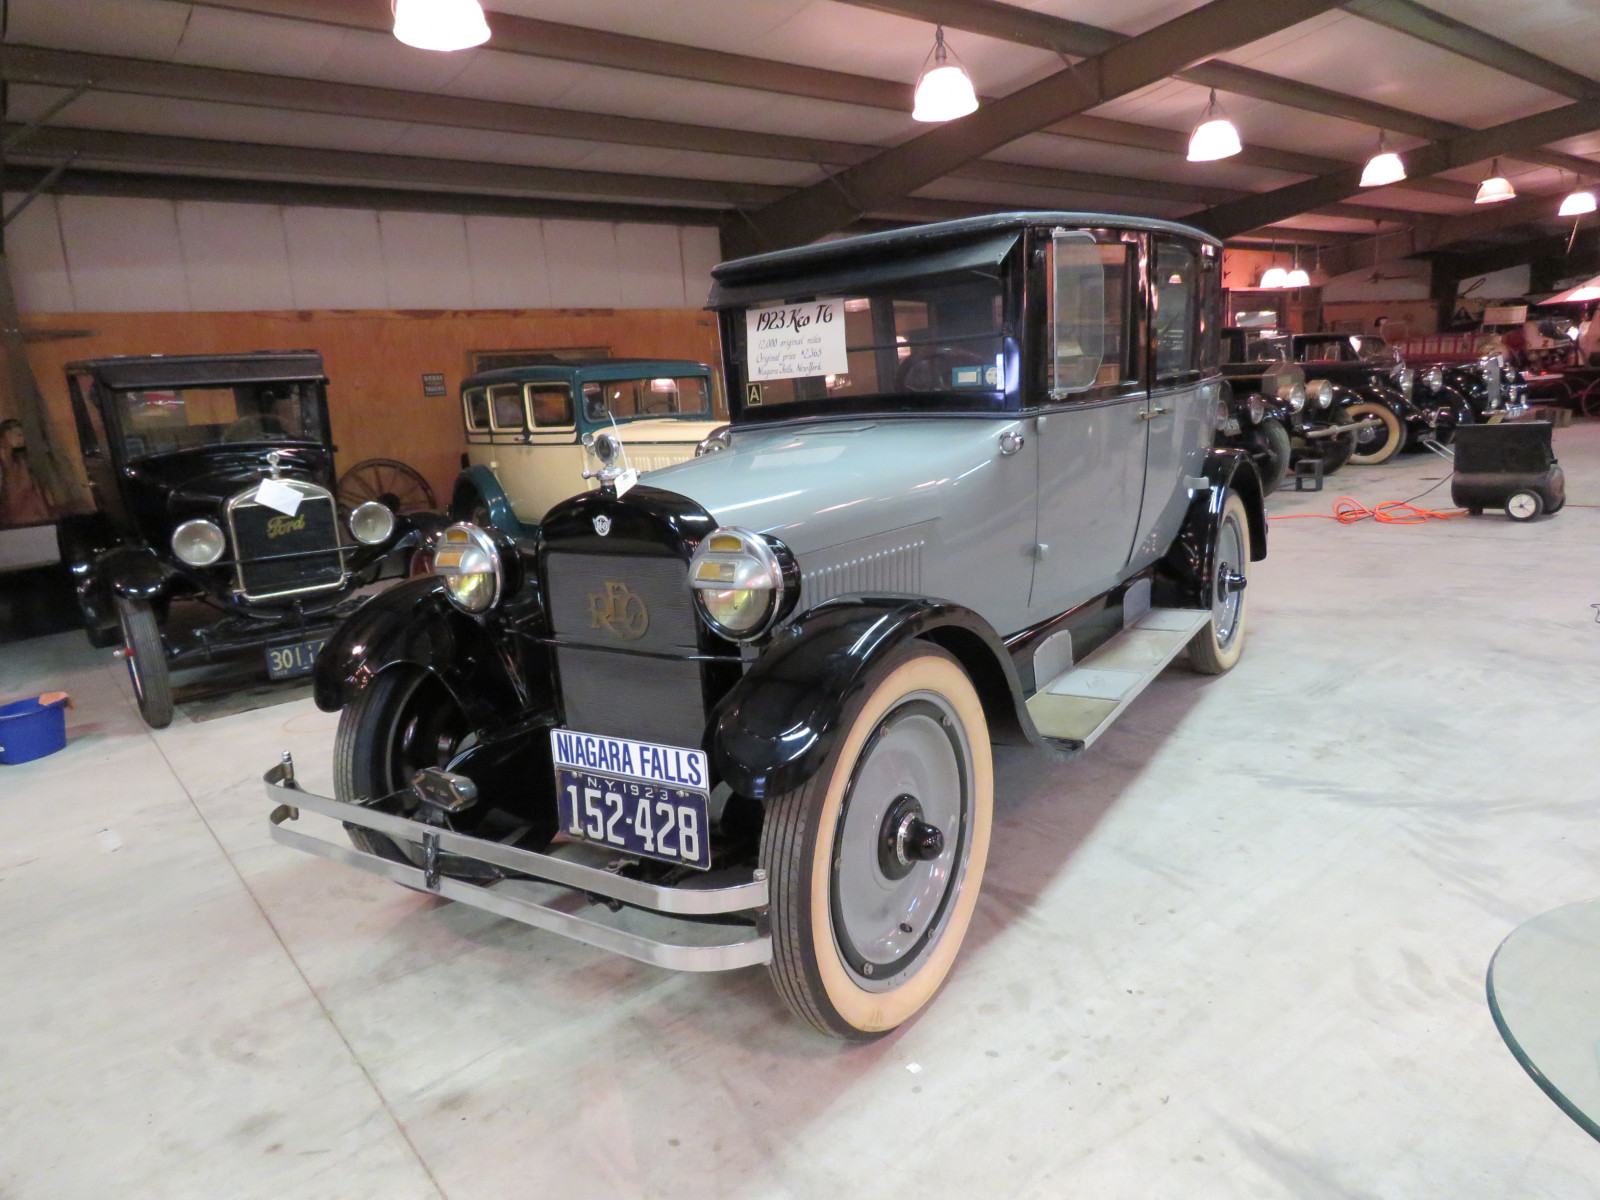 1923 REO Model T6 4dr Sedan - Image 1